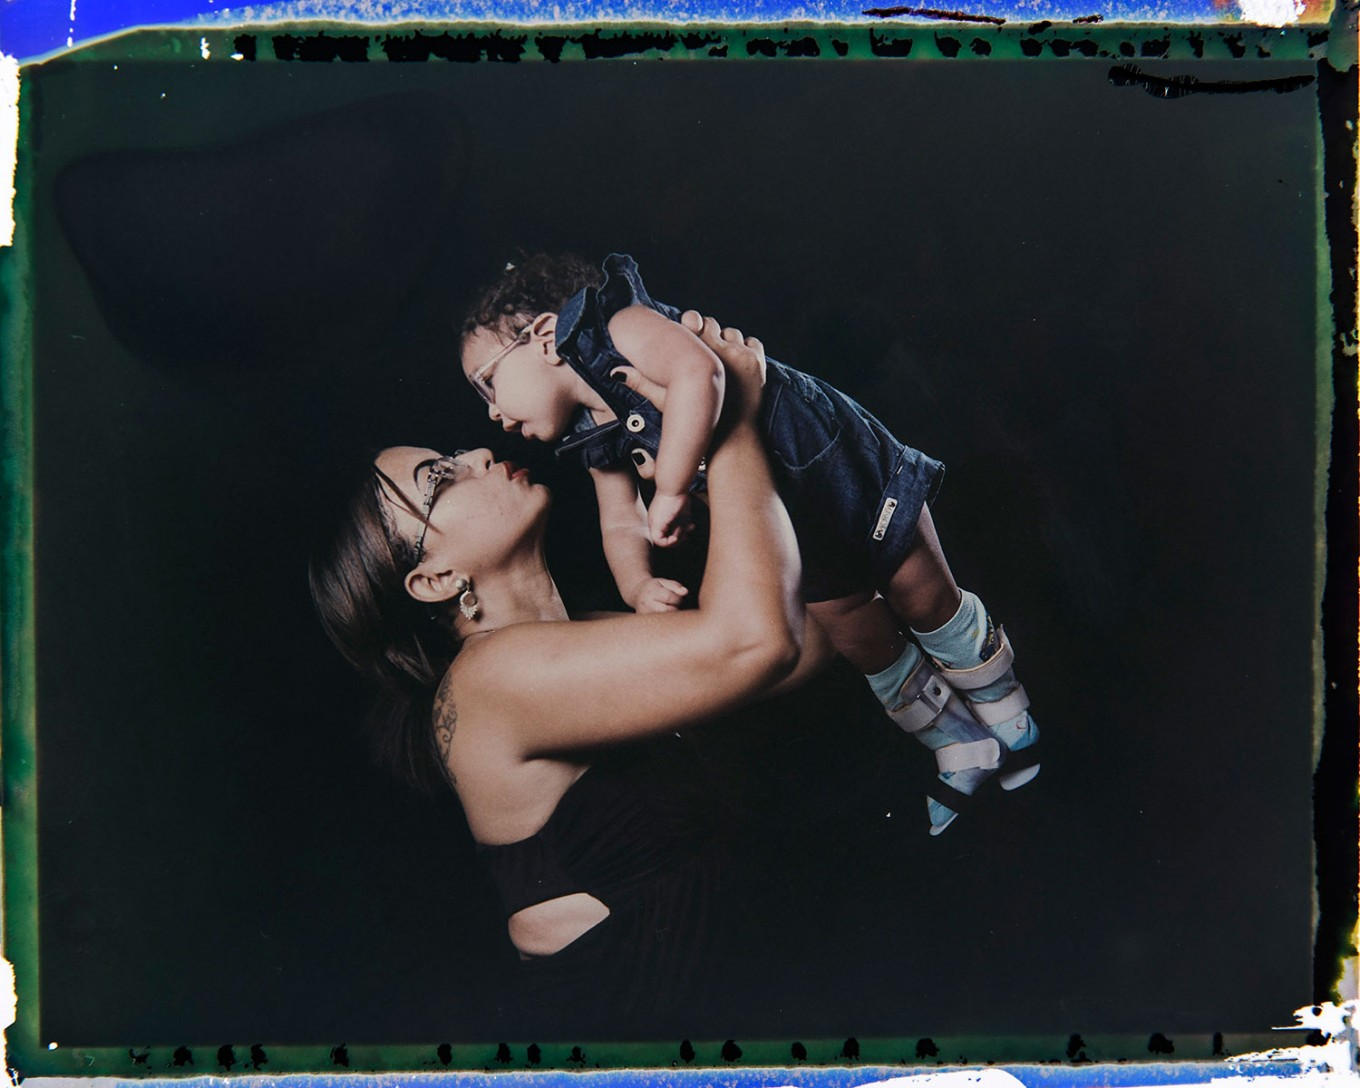 In this Sept. 29, 2016 photo made from a negative recovered from instant film, Rosana Alves holds her daughter Luana, who was born with microcephaly, one of many serious medical problems that can be caused by congenital Zika syndrome, as they pose for a photo in Recife, Pernambuco state, Brazil. Alves has three daughters and has left work to take care of Luana, who is equipped with specially designed leg braces to help position her feet. AP Photo/Felipe Dana